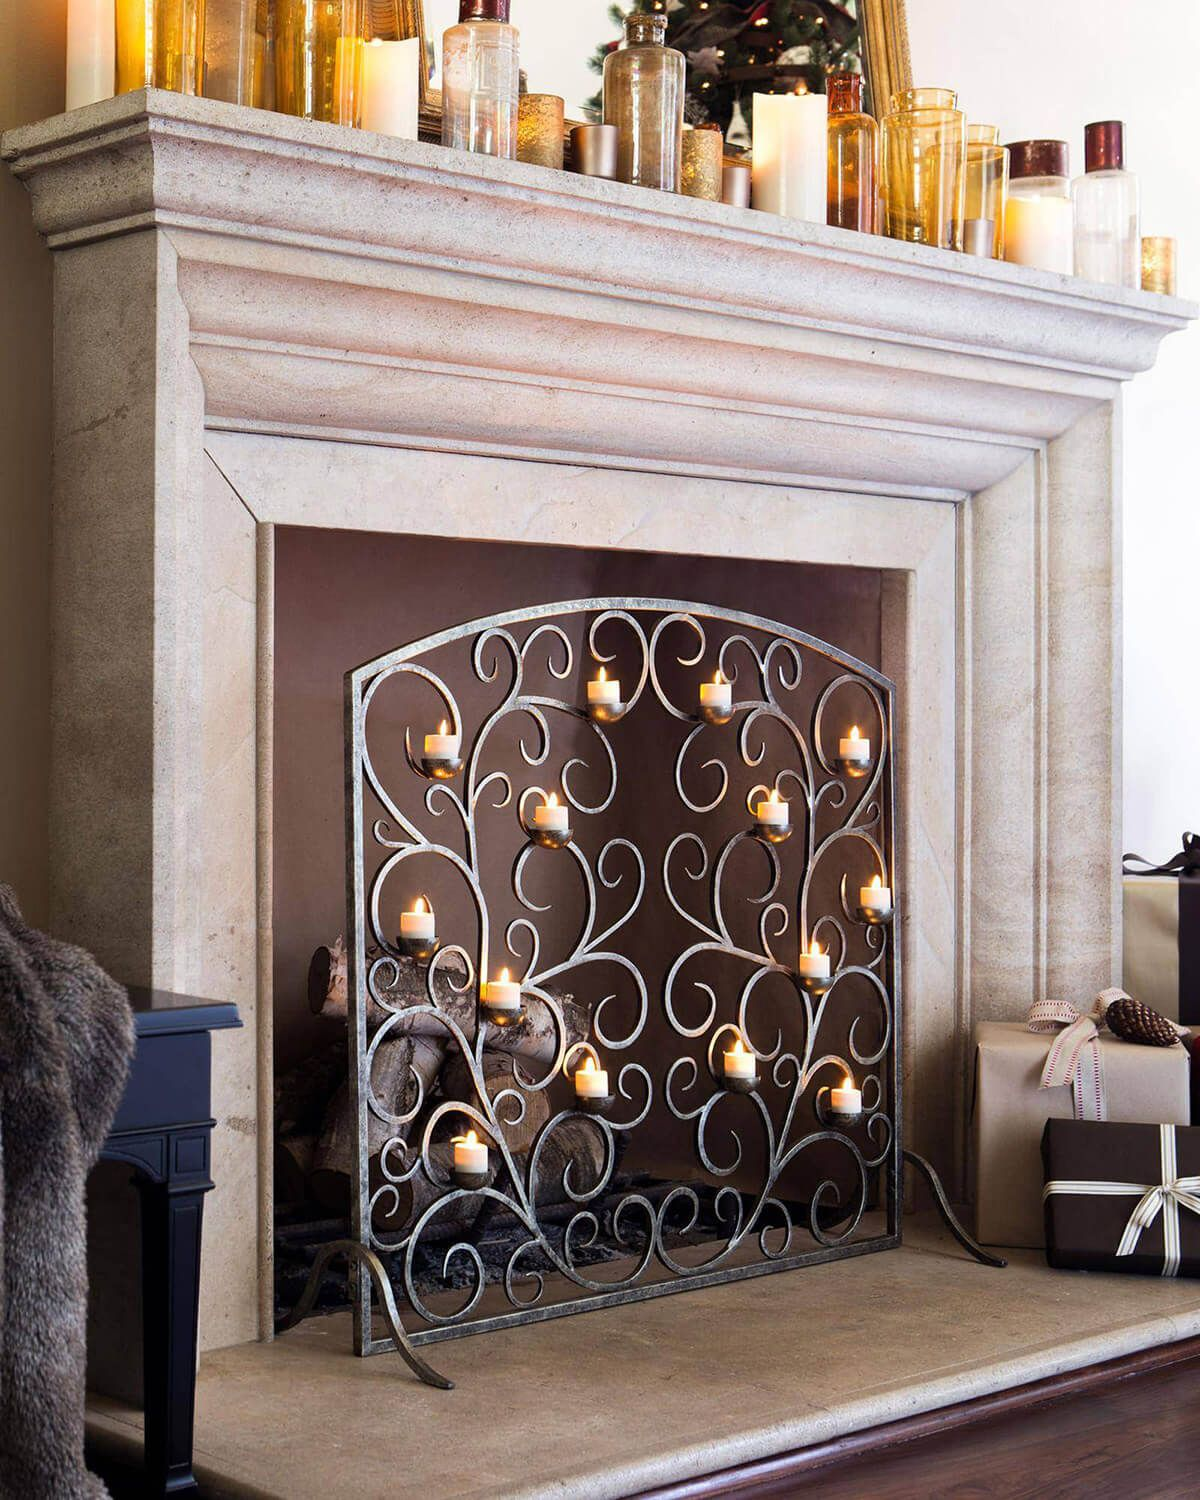 14 Ideas To Decorate Your Rooms With Lights And Brighten Up Your Space Candles In Fireplace Decorative Fireplace Screens Faux Fireplace